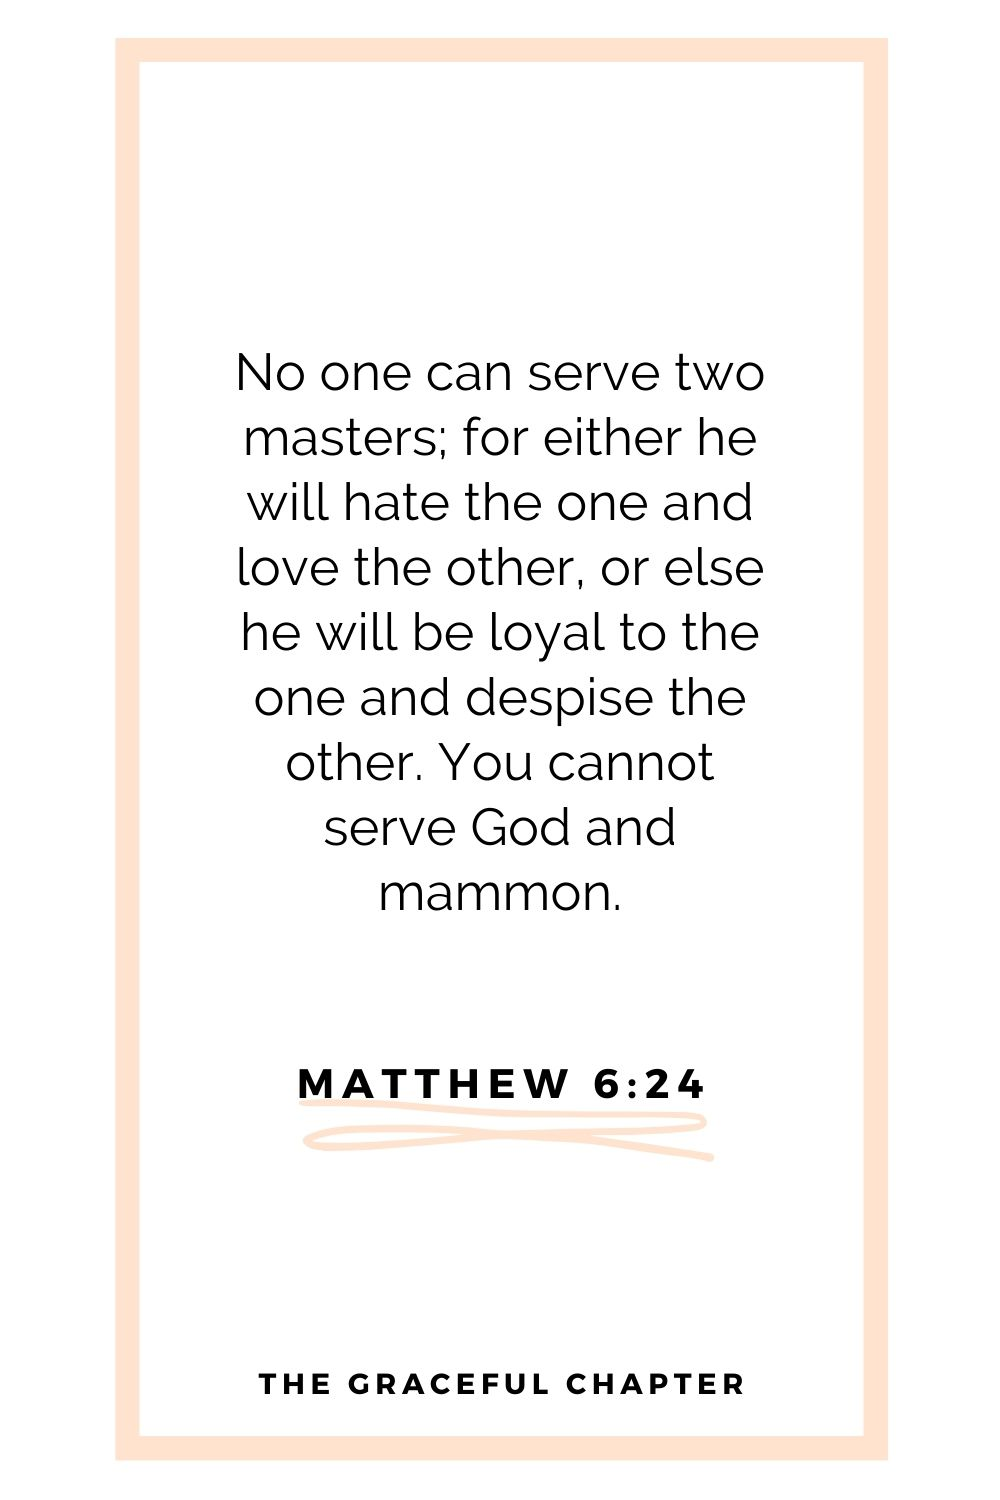 No one can serve two masters; for either he will hate the one and love the other, or else he will be loyal to the one and despise the other. You cannot serve God and mammon. Matthew 6:24